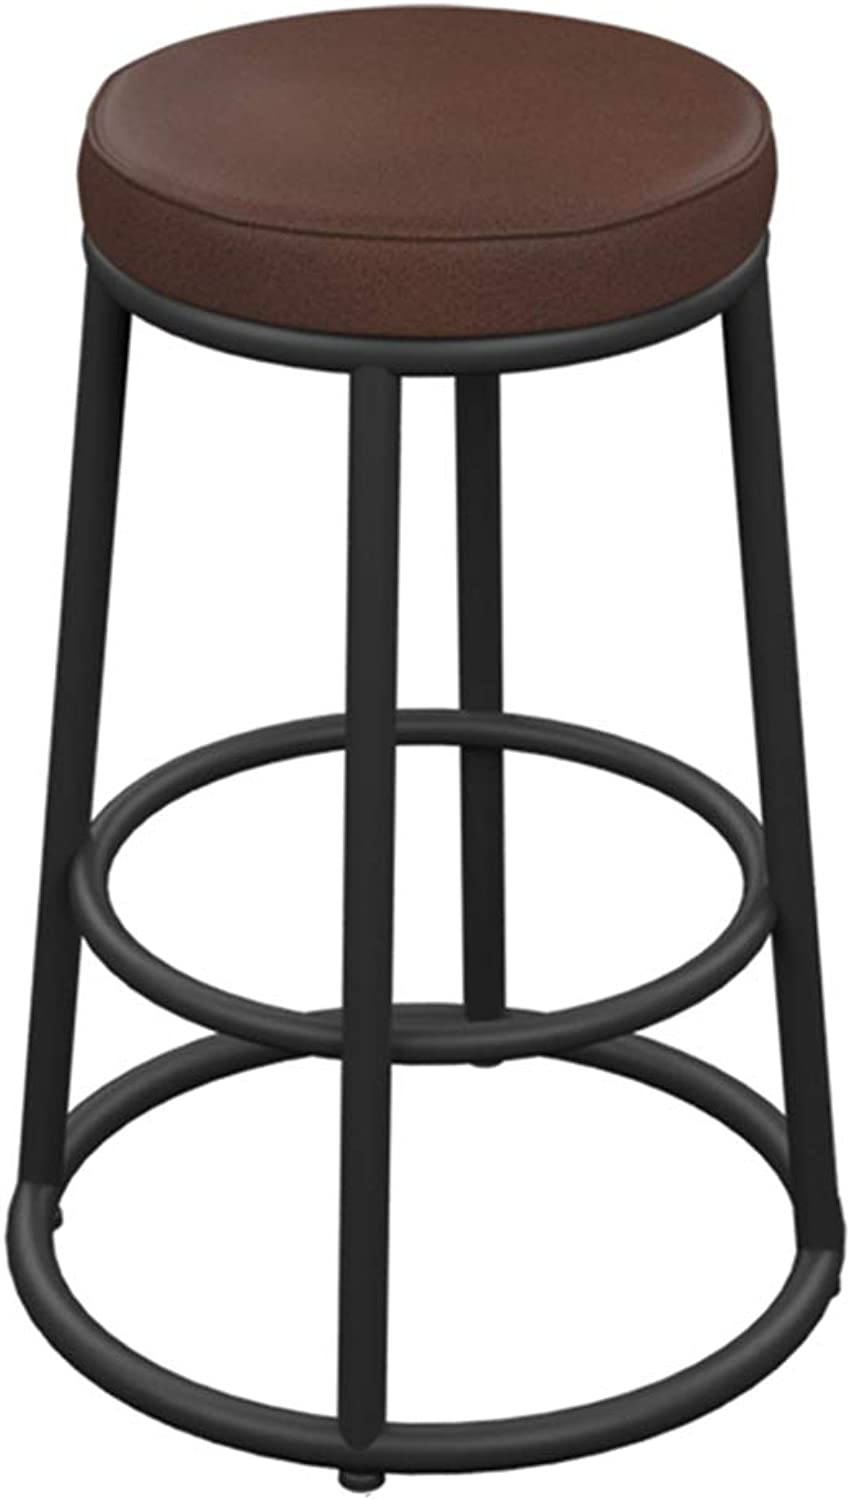 Barstools PU Leather High Stool with Footrest Retro Kitchen Breakfast Pub Counter Cafe Bar Stools, Load Bearing 200kg